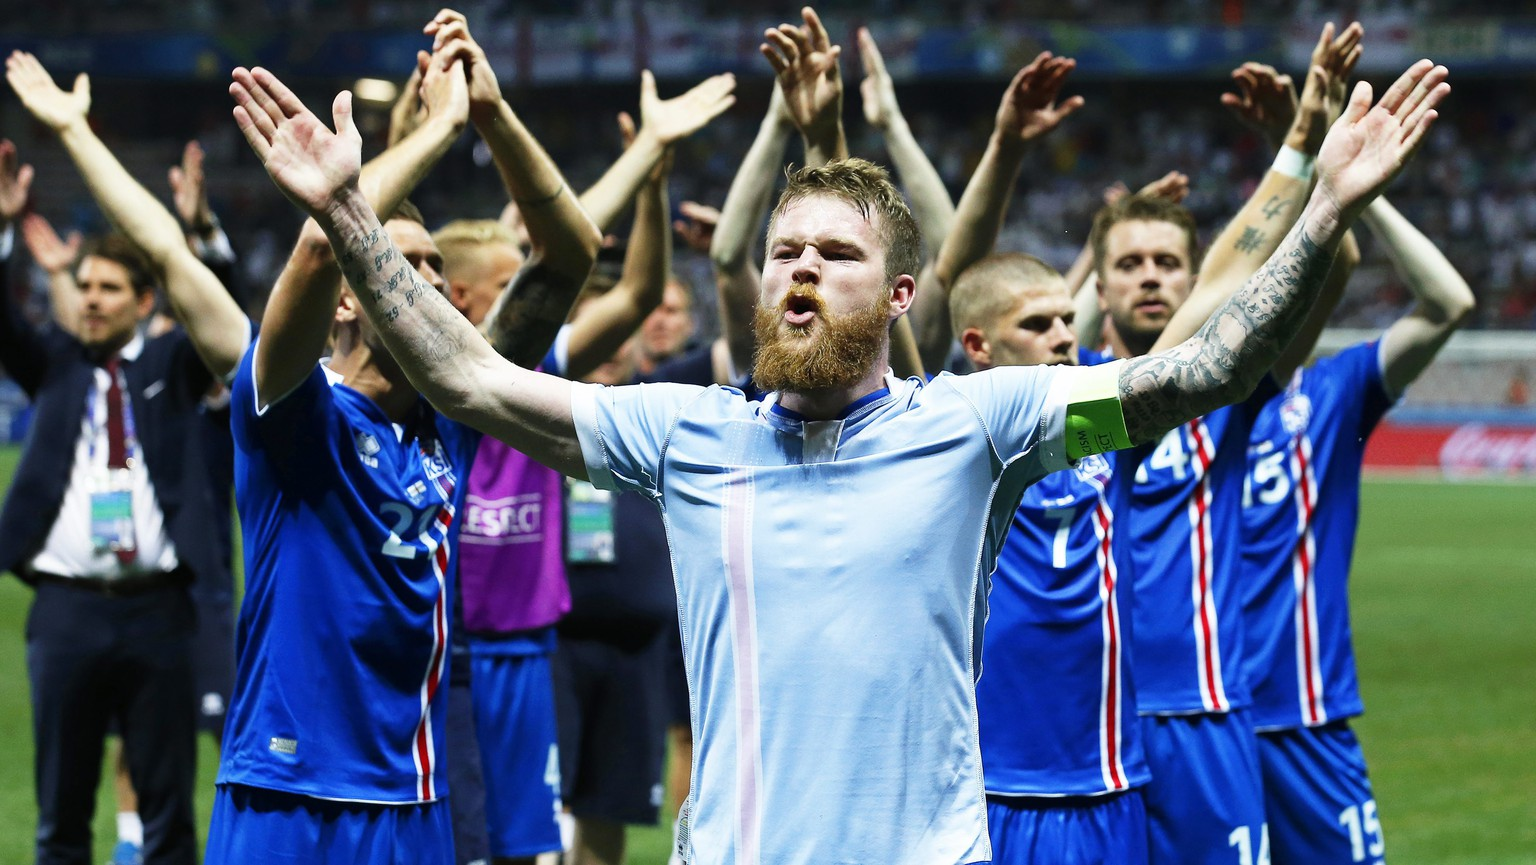 epa05395426 Aron Gunnarsson (front) of Iceland and his teammates celebrate after the UEFA EURO 2016 round of 16 match between England and Iceland at Stade de Nice in Nice, France, 27 June 2016. Iceland won 2-1.